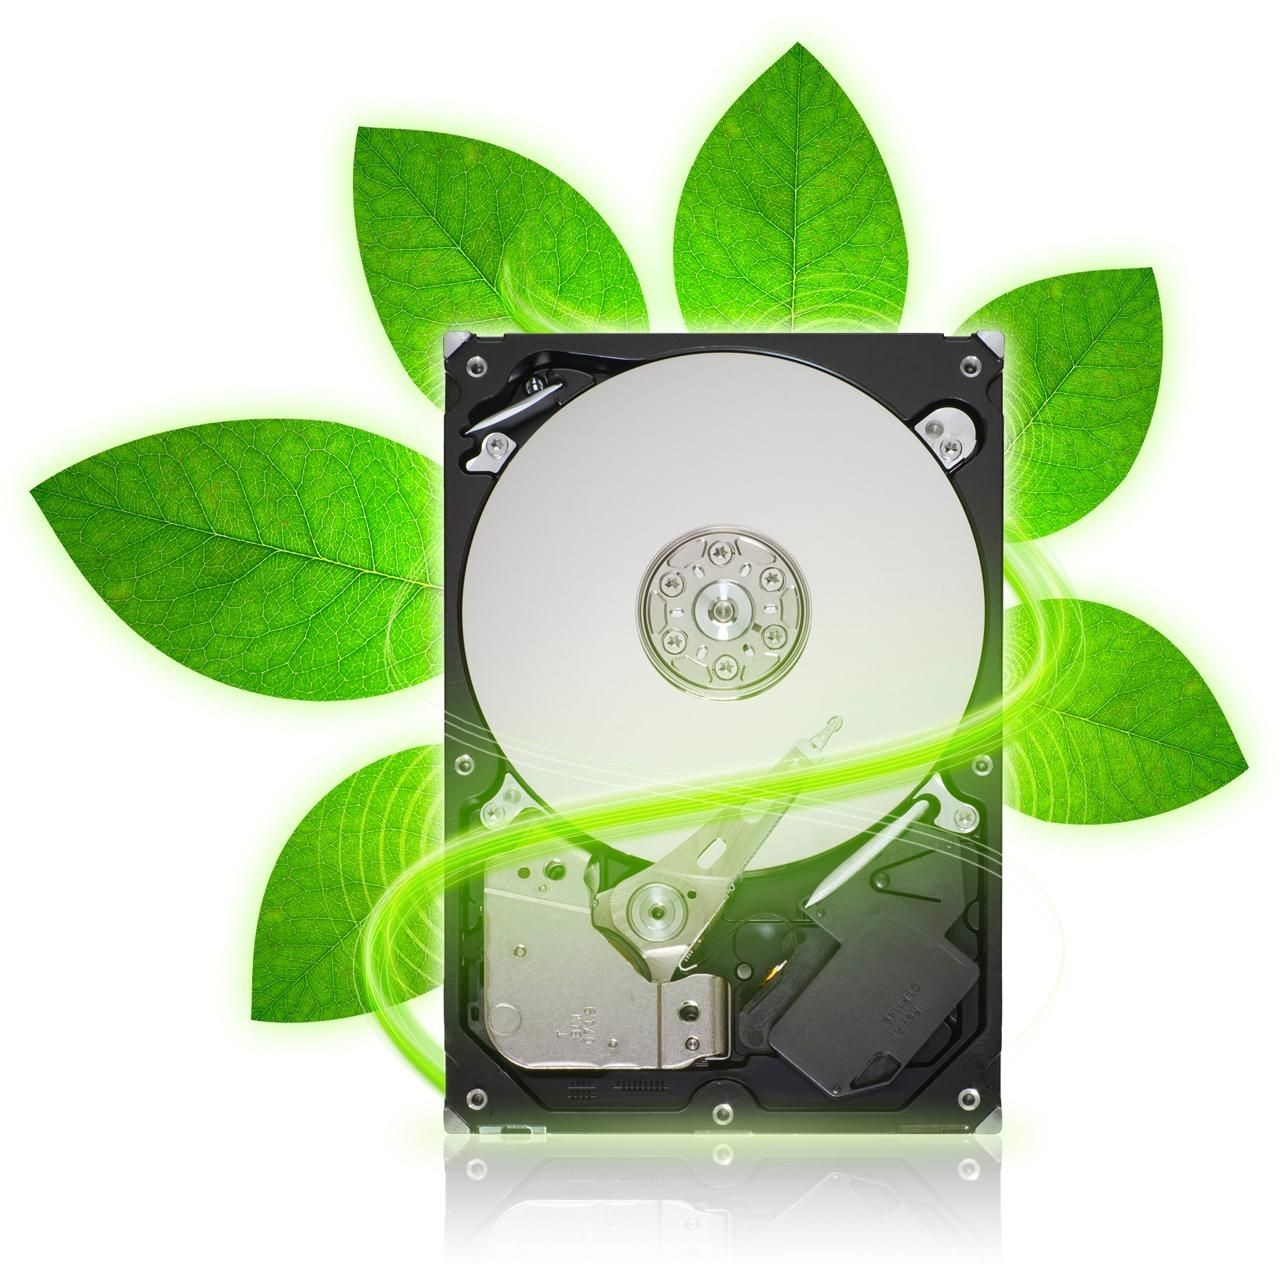 Seagate-Barracuda-Green-5900-3-2TB-3-5-ST2000DL003-SATA-600-64MB-5900RPM